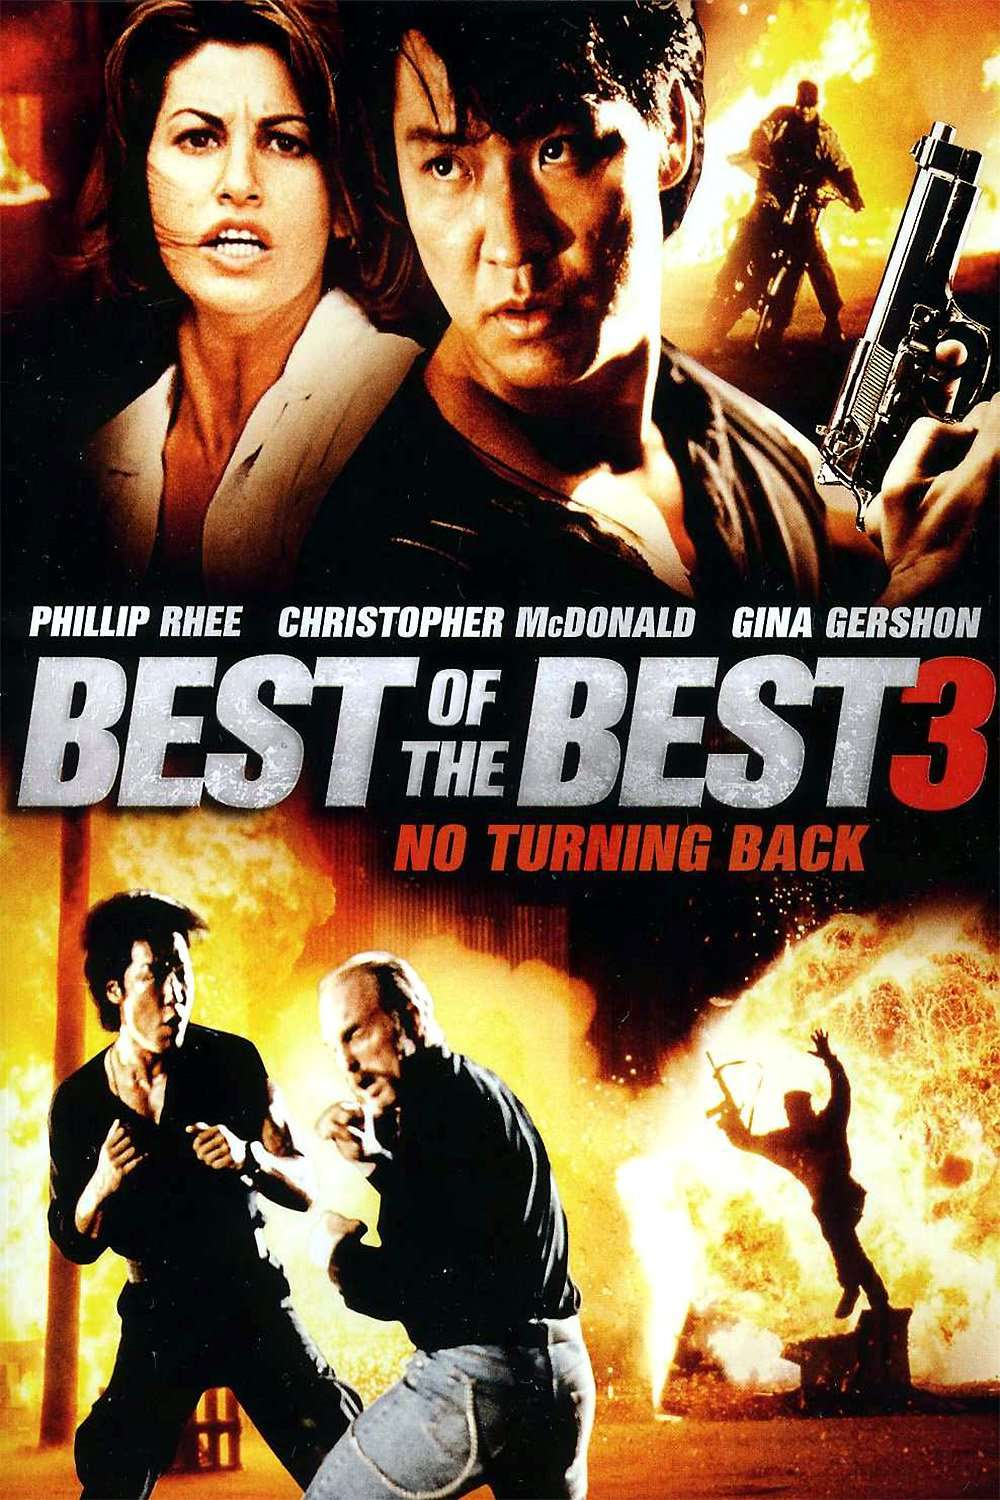 Best of the Best 3: No Turning Back kapak